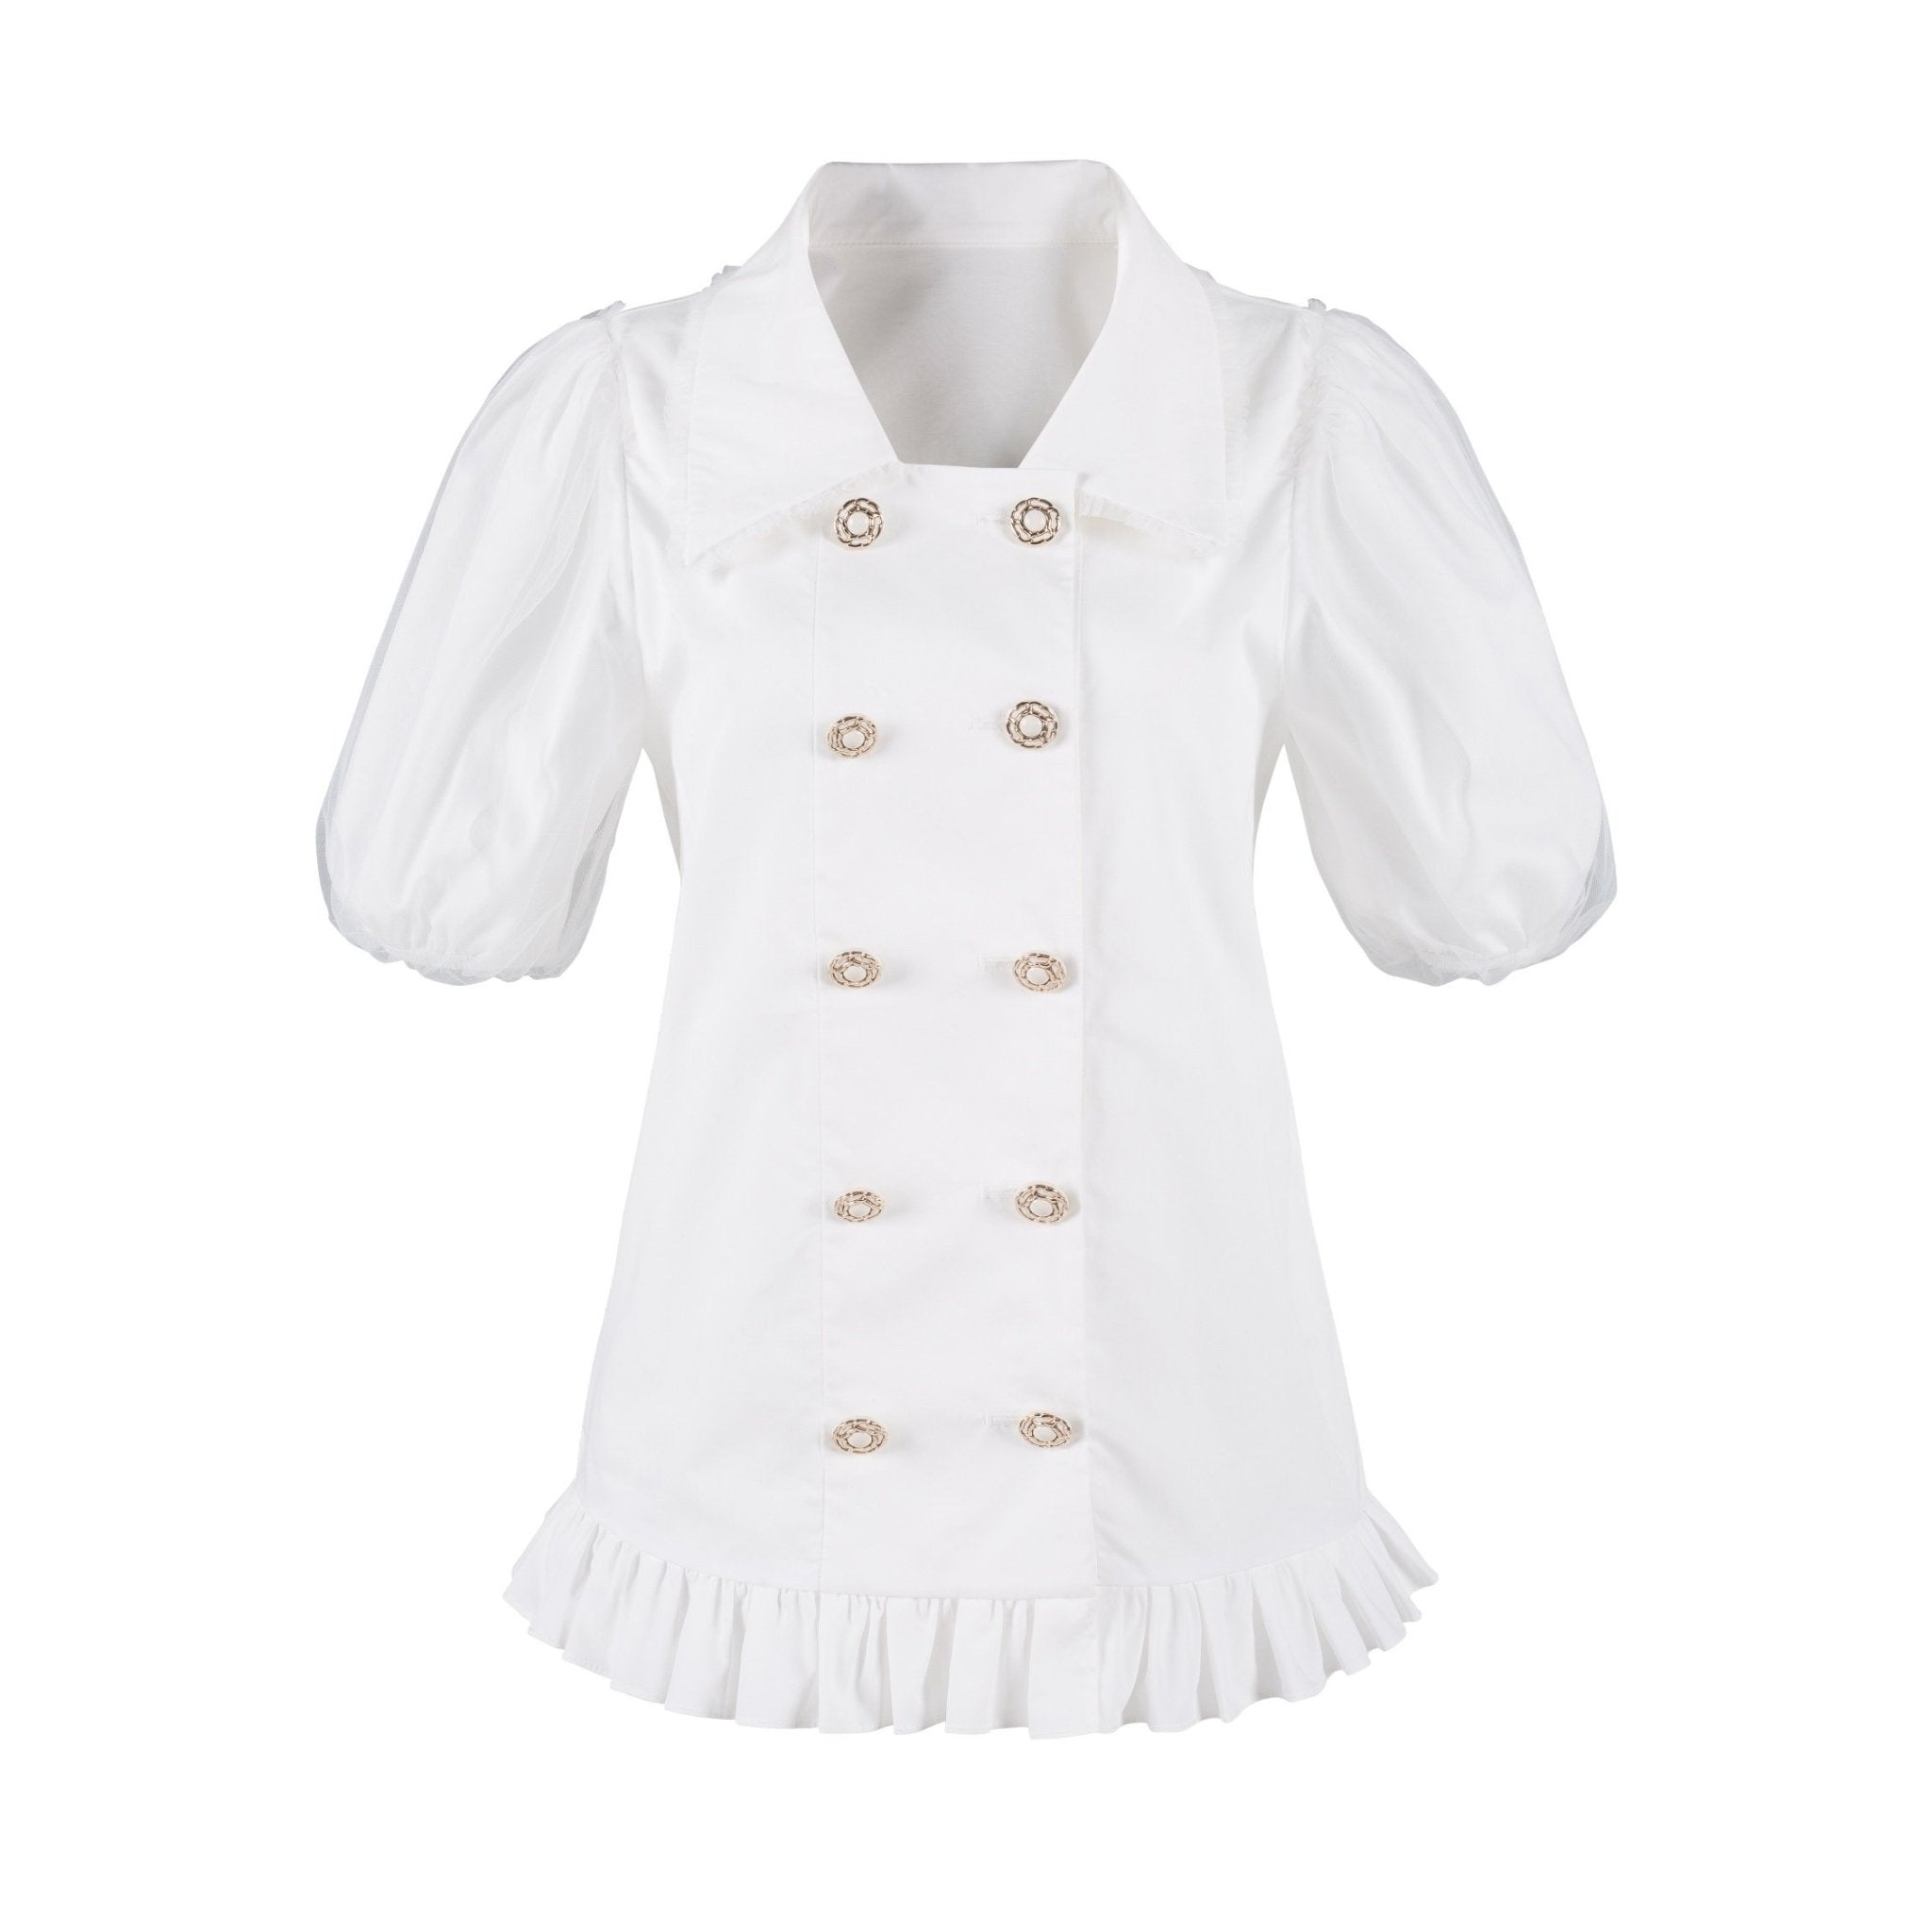 VIAS HERLIAN White Mesh Bubble Sleeve Shirt | MADA IN CHINA